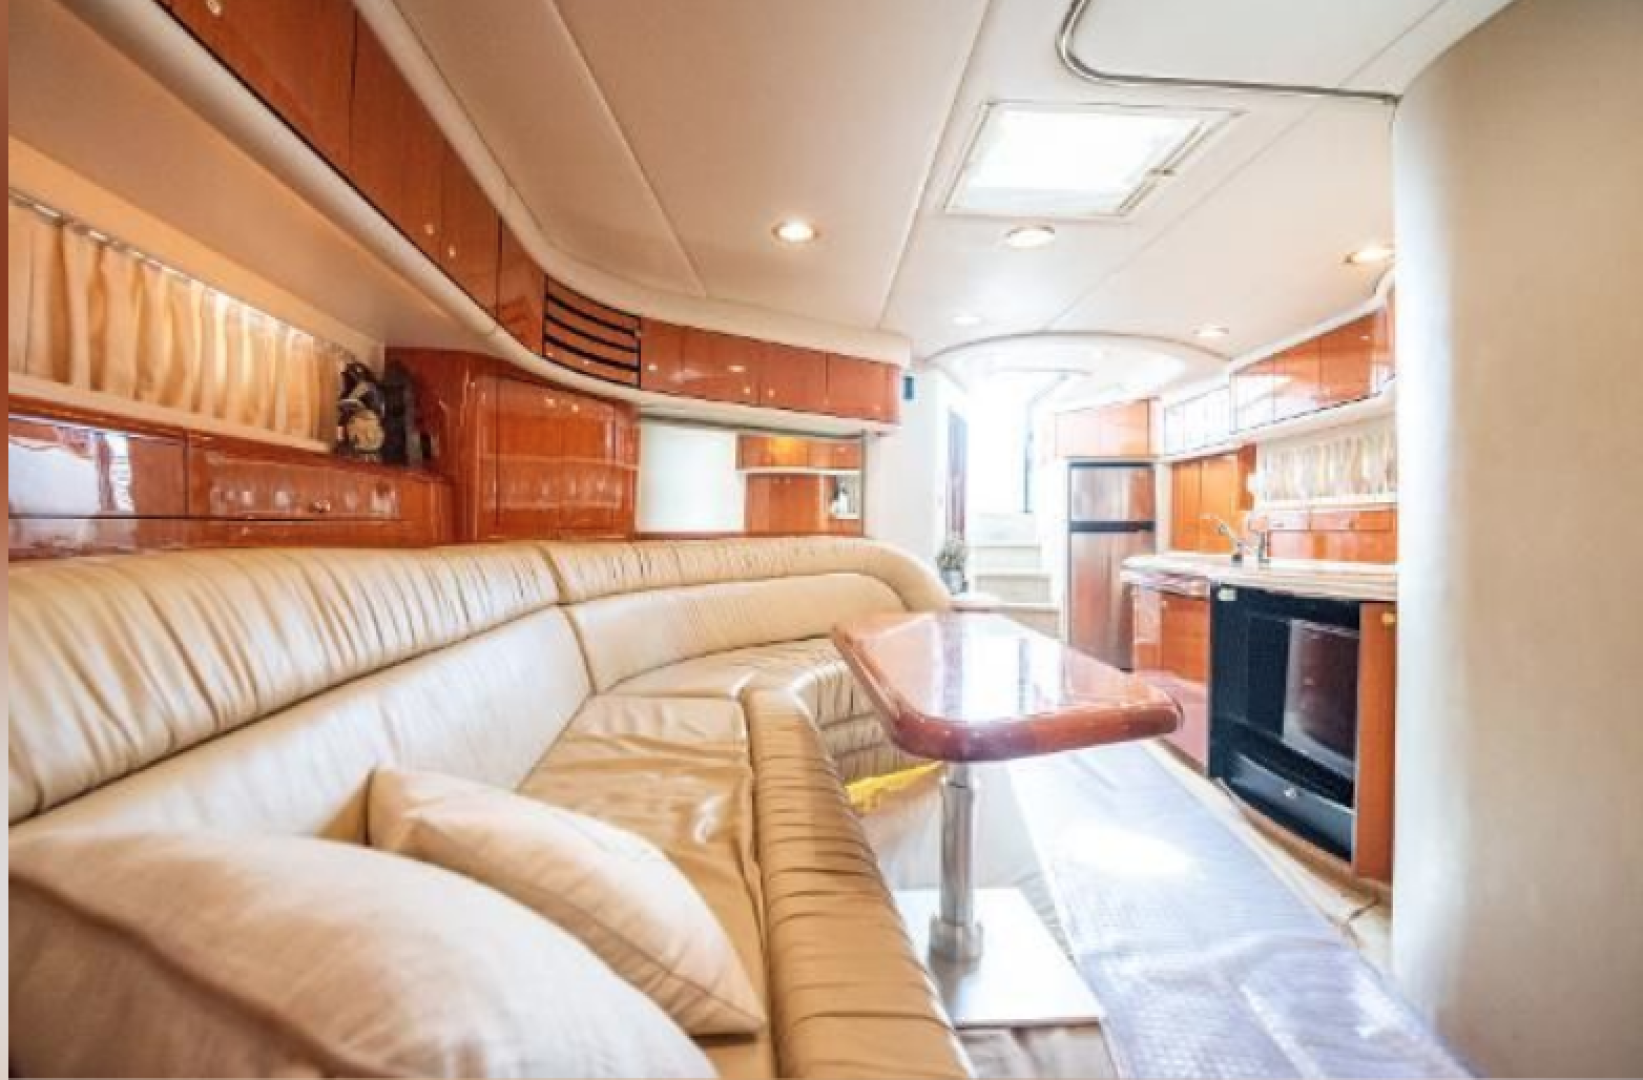 Sea Ray-540 Sundancer 2000-Bettsy Miami-Florida-United States-1562156 | Thumbnail